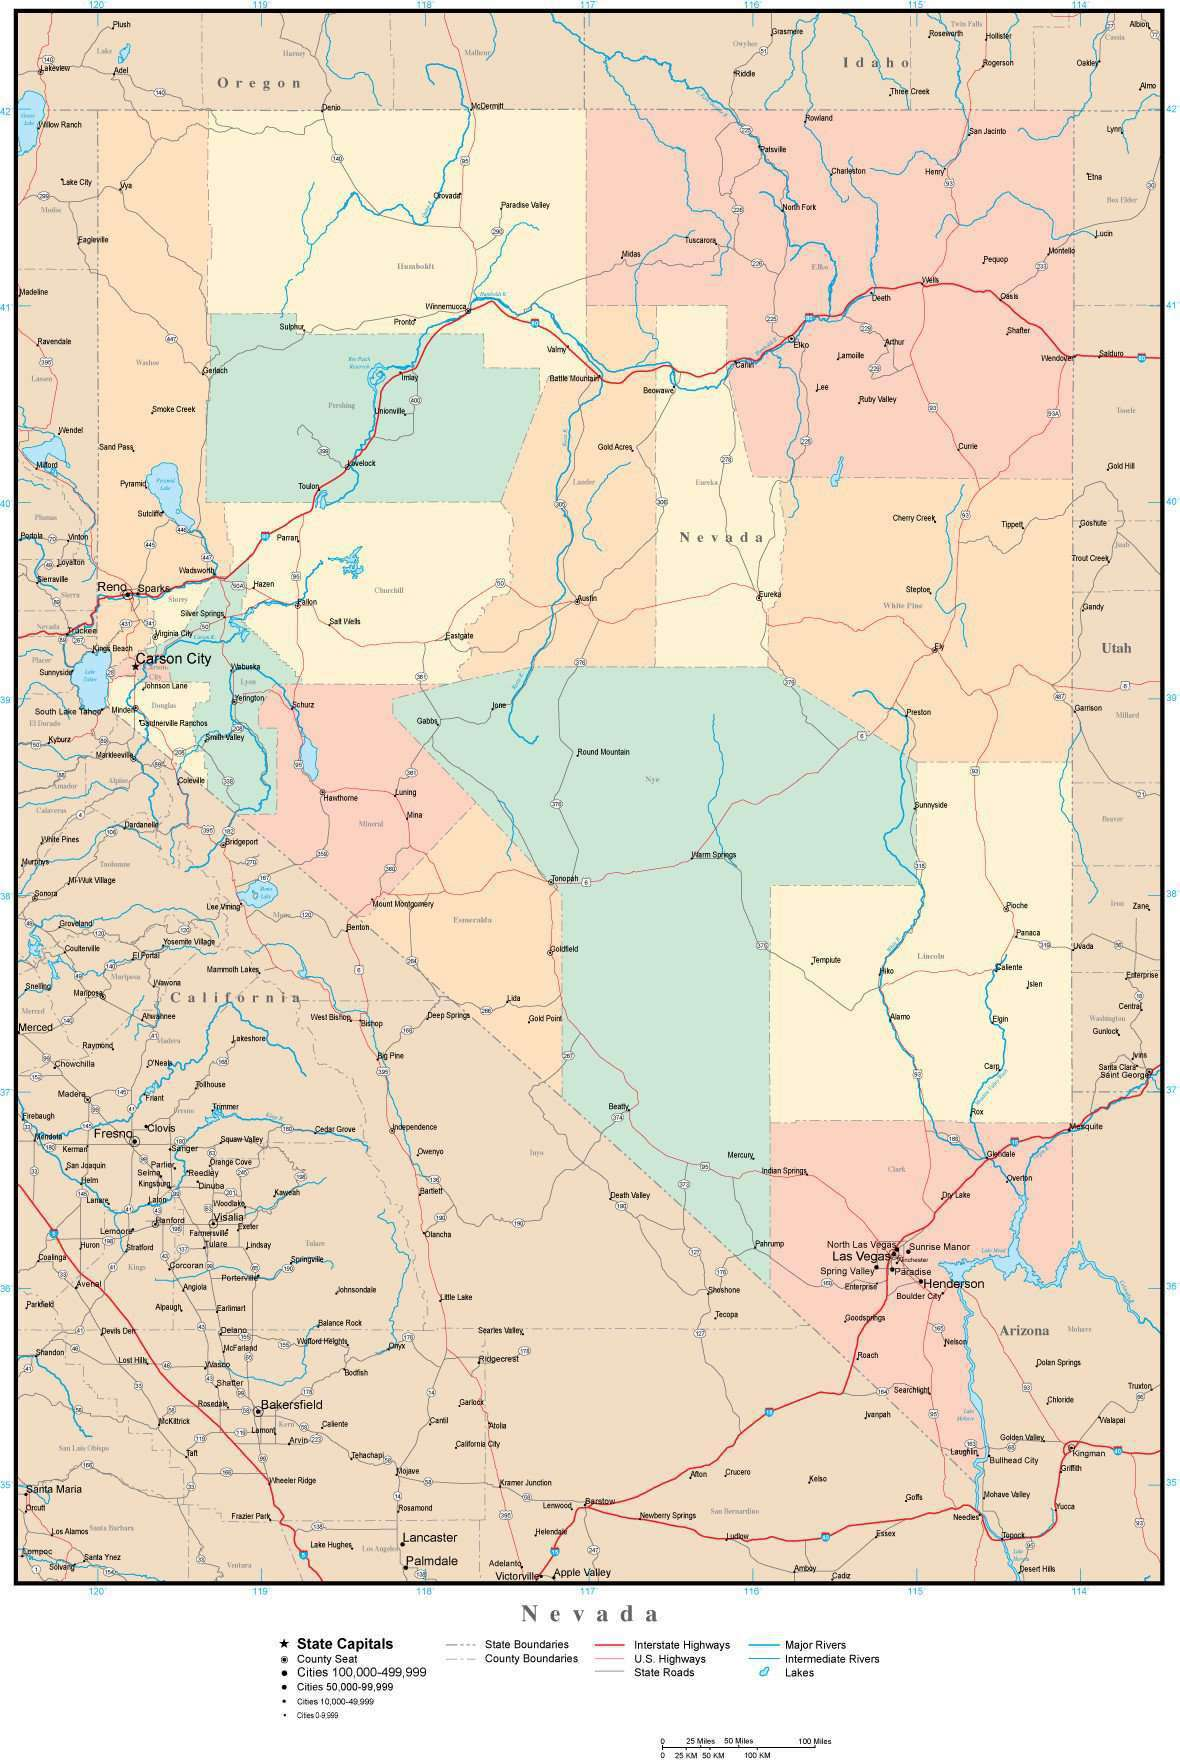 Picture of: Nevada Adobe Illustrator Map With Counties Cities County Seats Major Roads